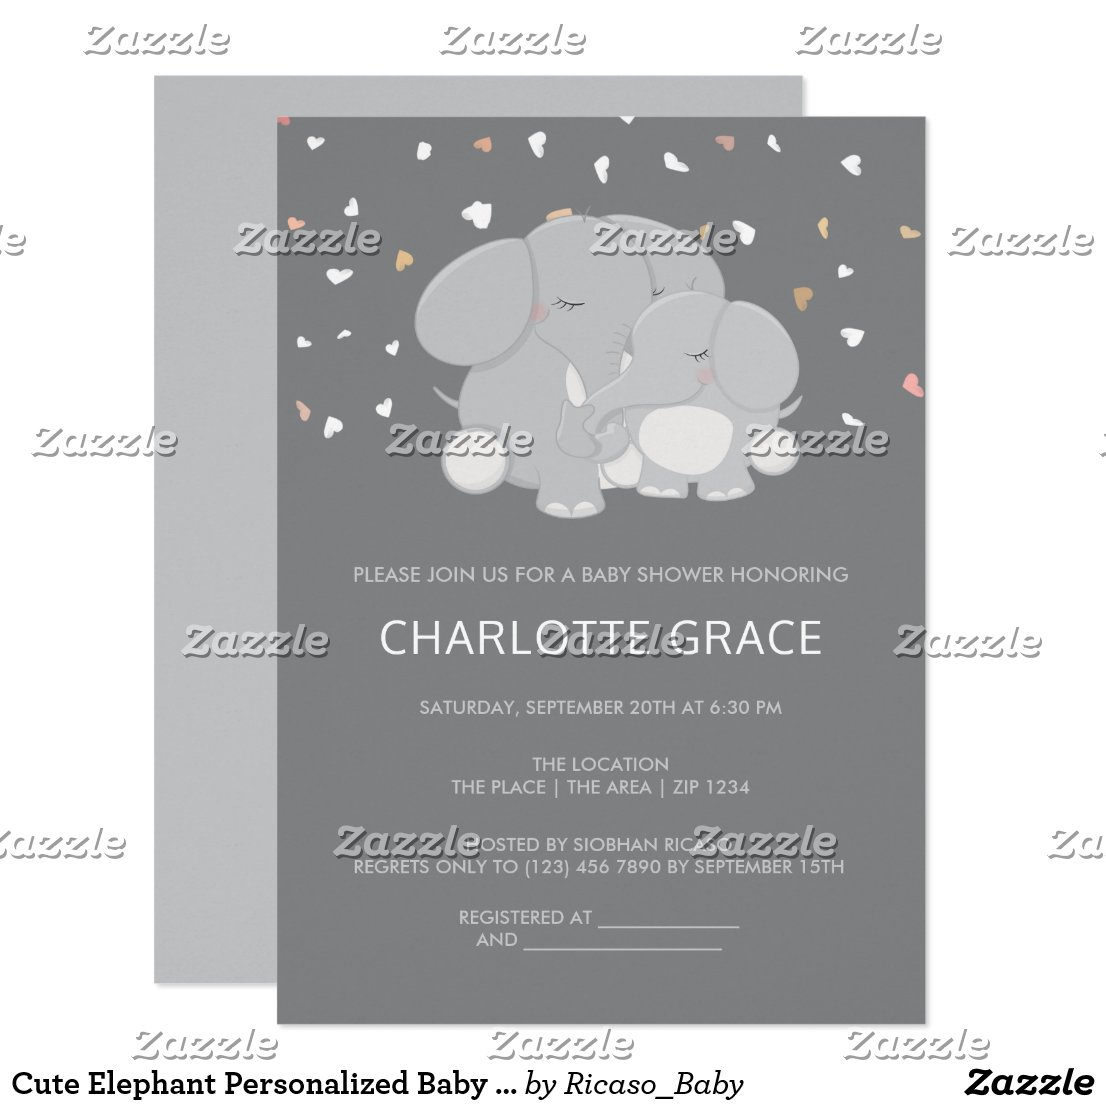 Cute Elephant Personalized Baby Shower Invitation